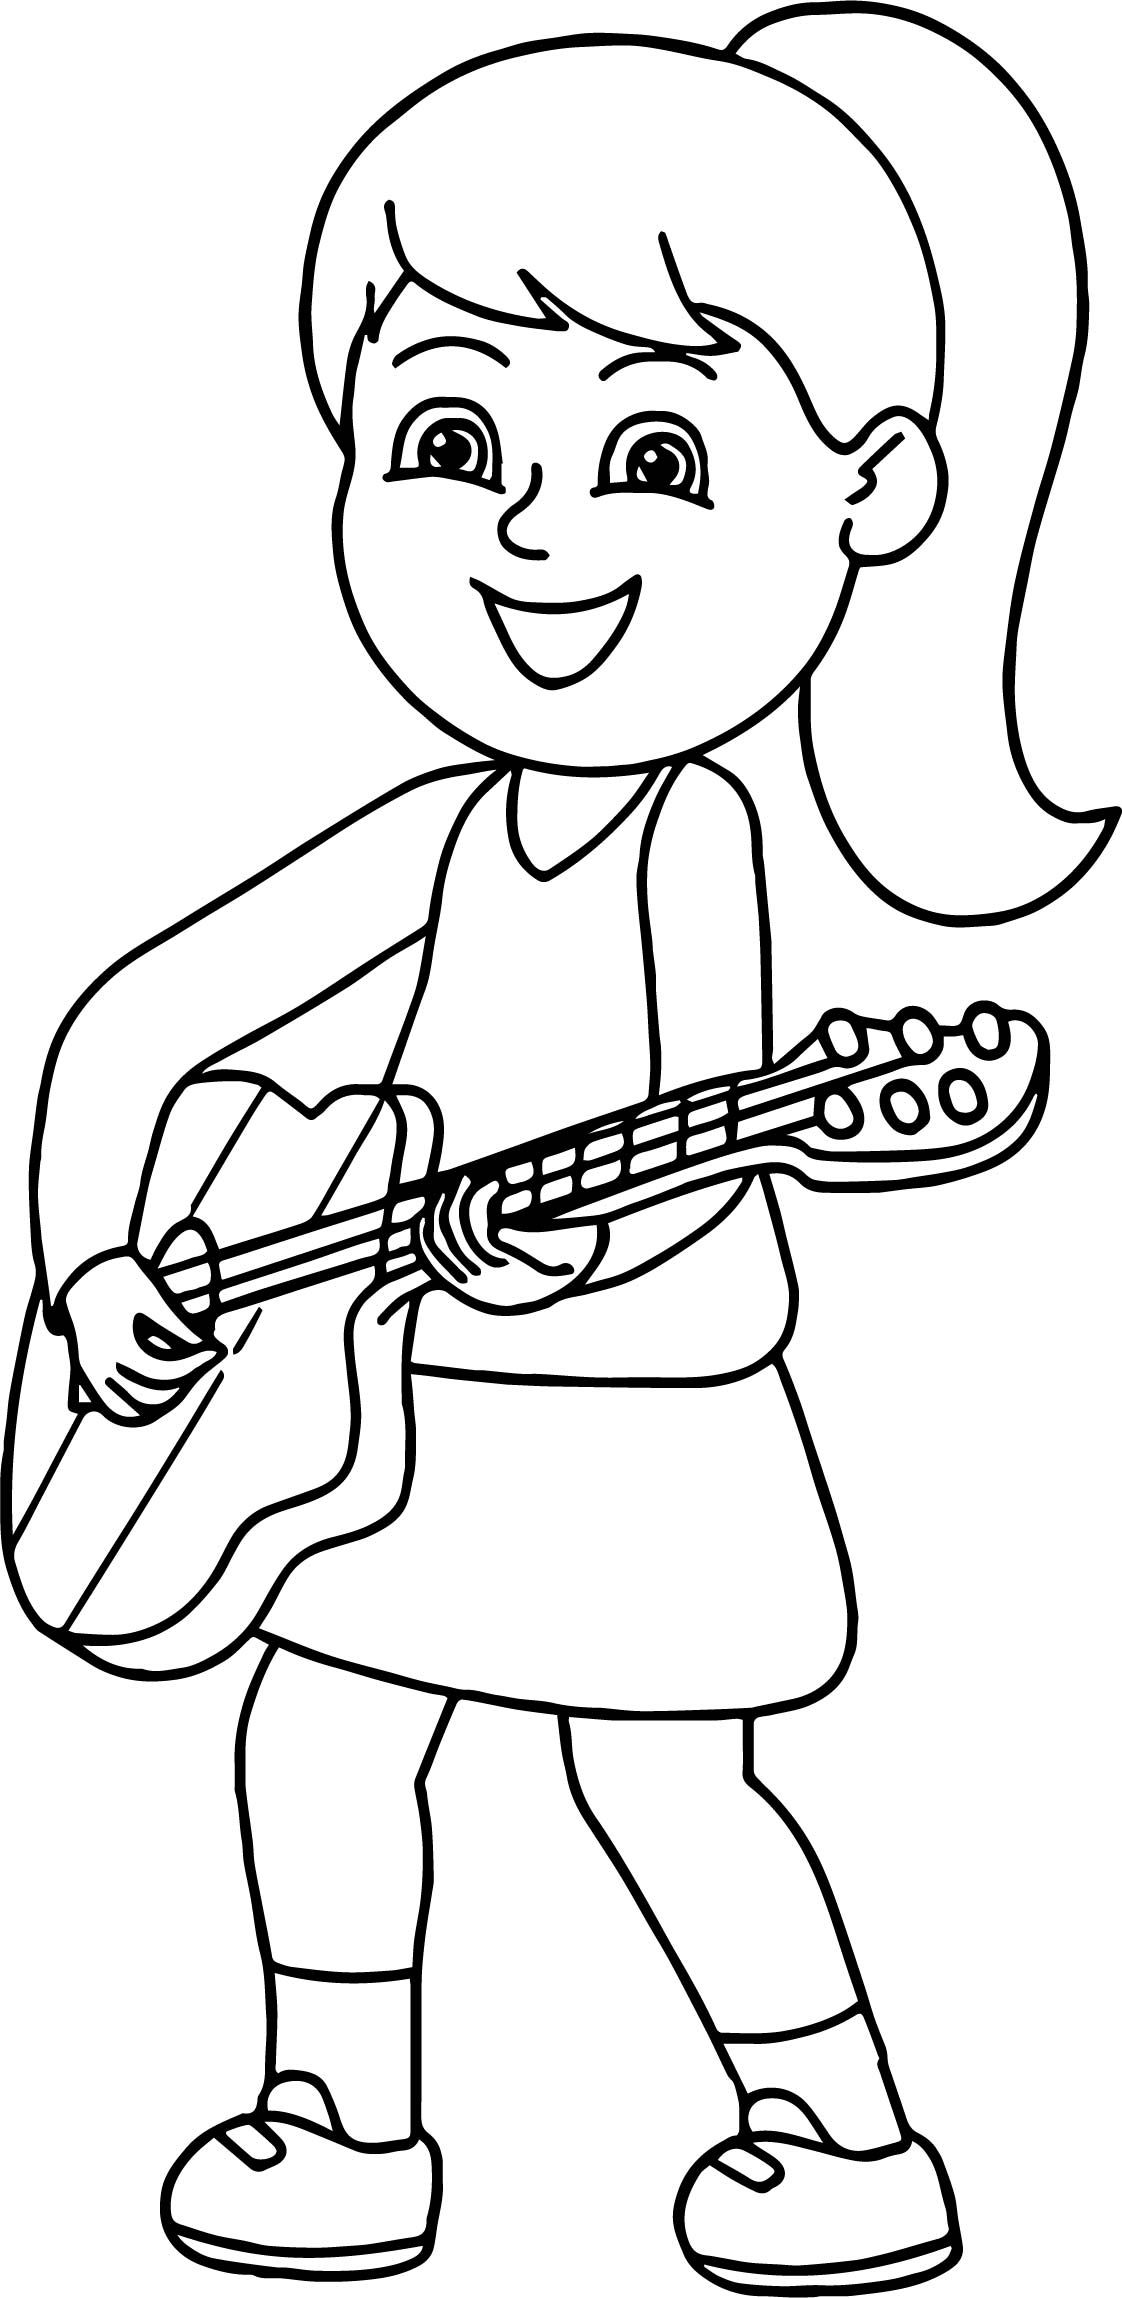 Cool Girl Playing Guitar Playing The Guitar Coloring Page